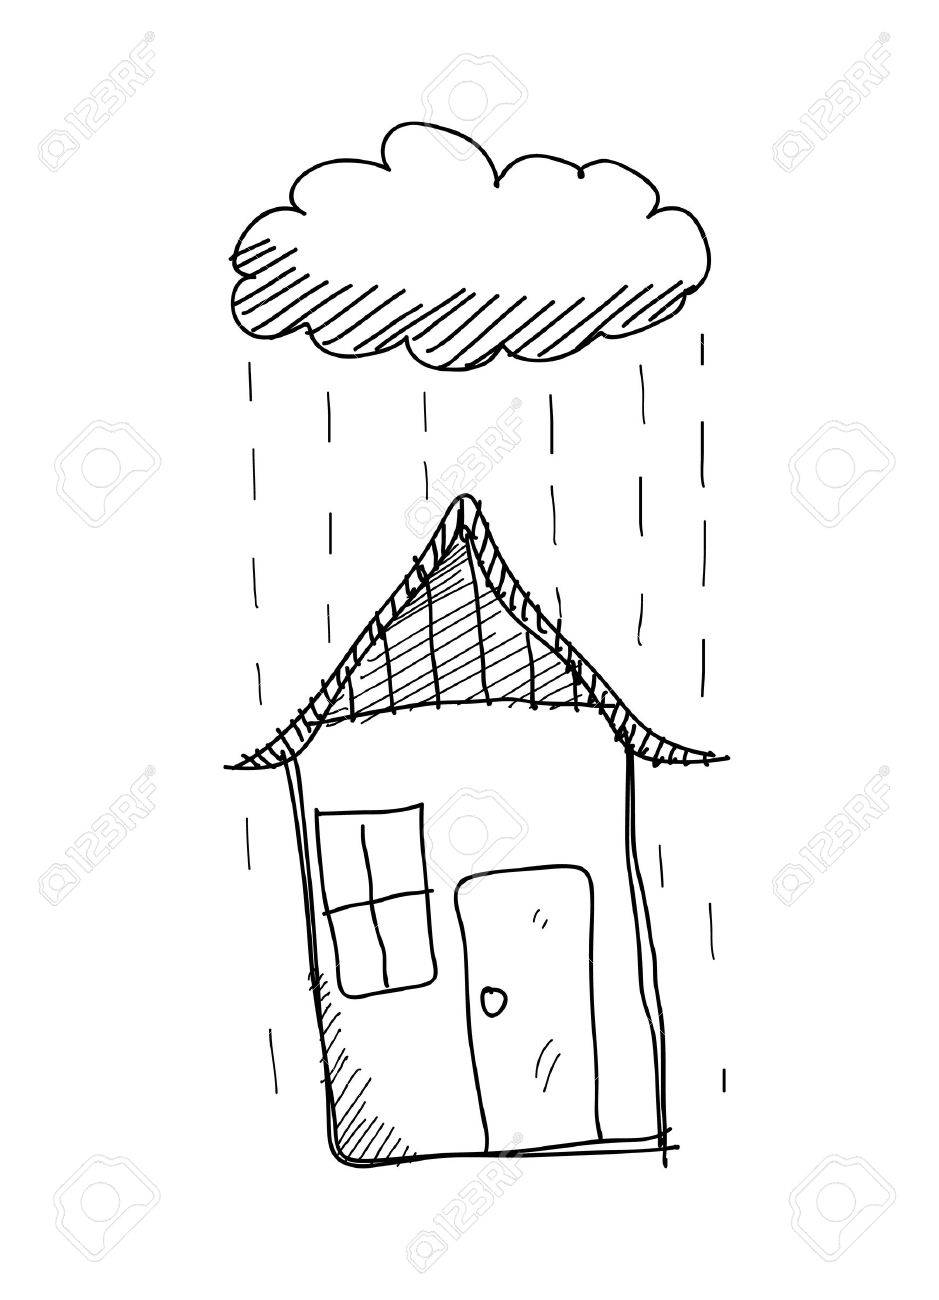 Rainy day doodle a hand drawn vector doodle illustration of